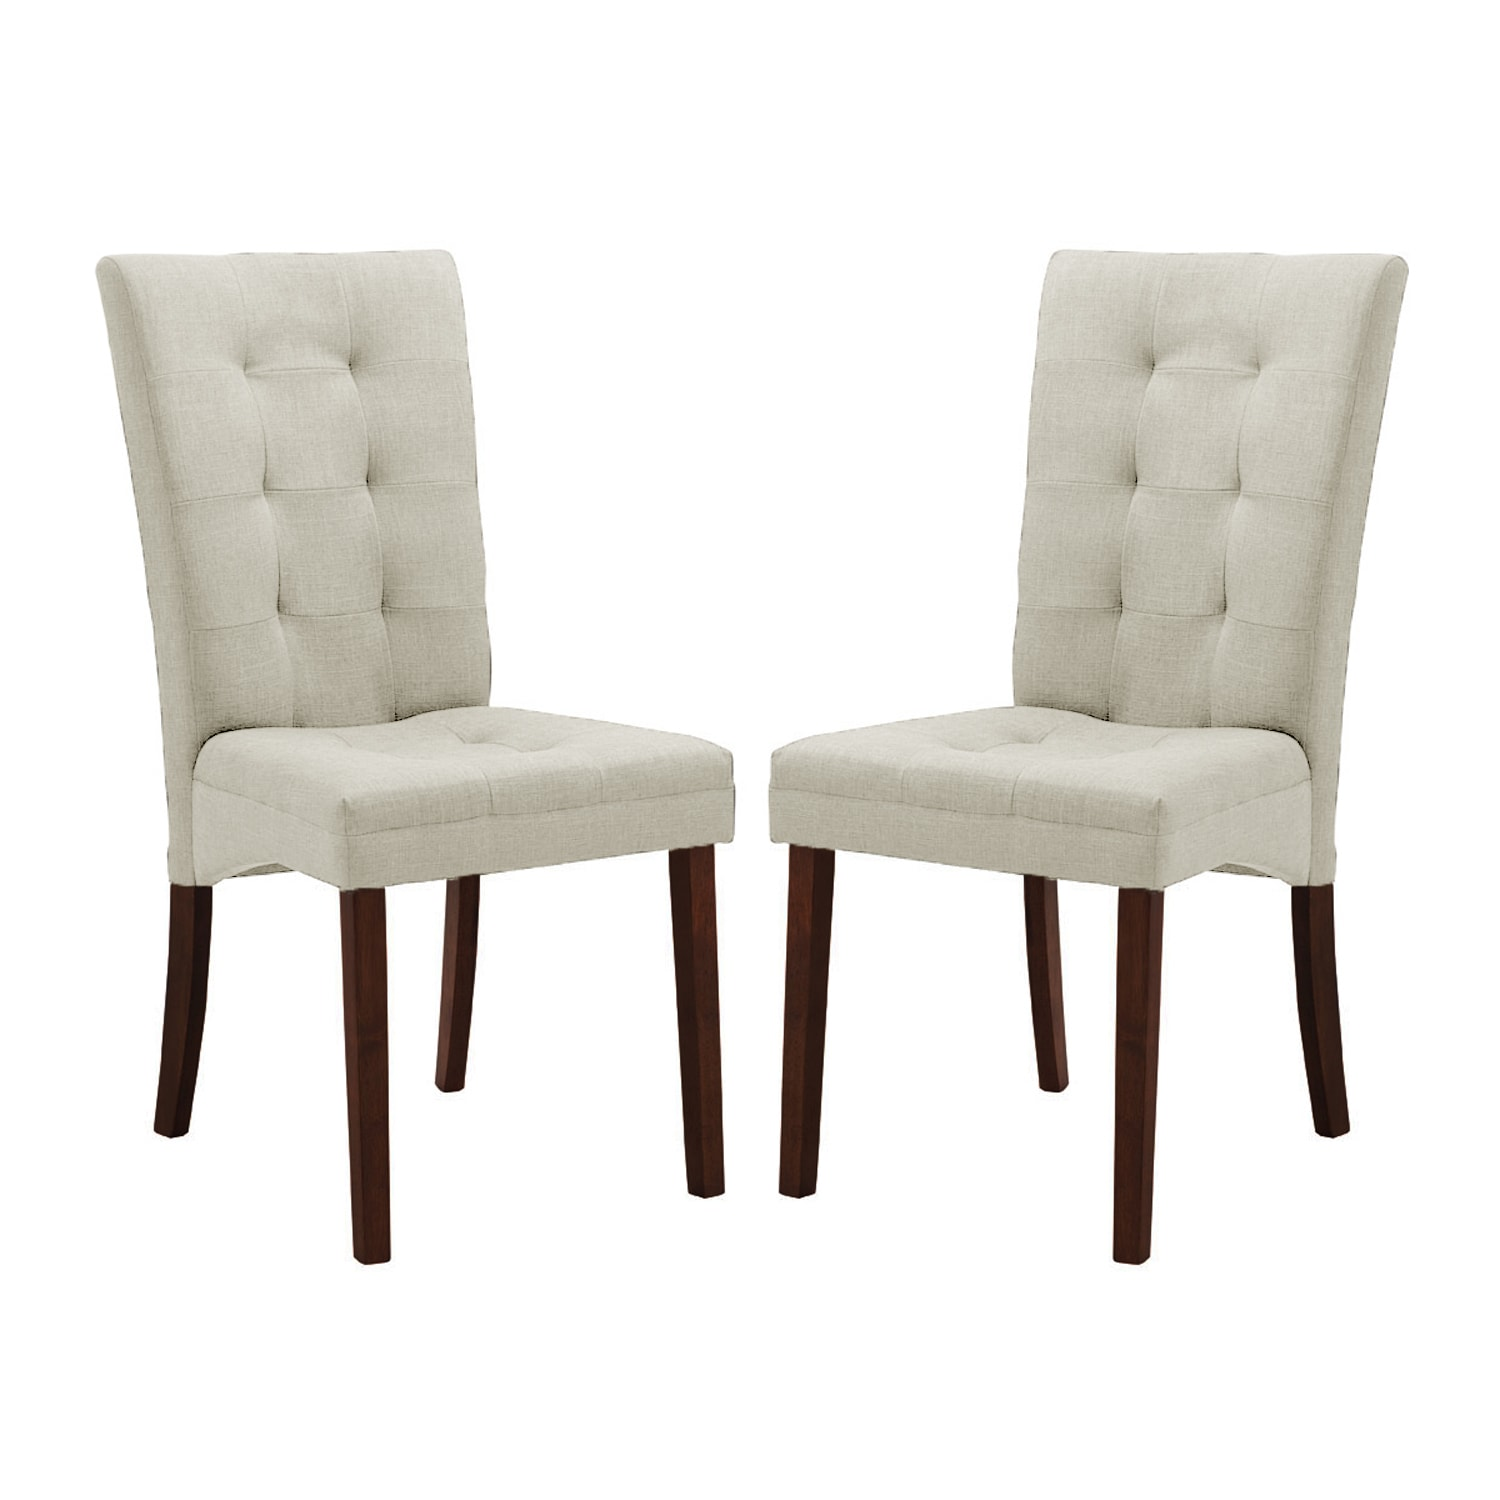 Baxton studio anne beige fabric modern dining chair set for 2 dining room chairs